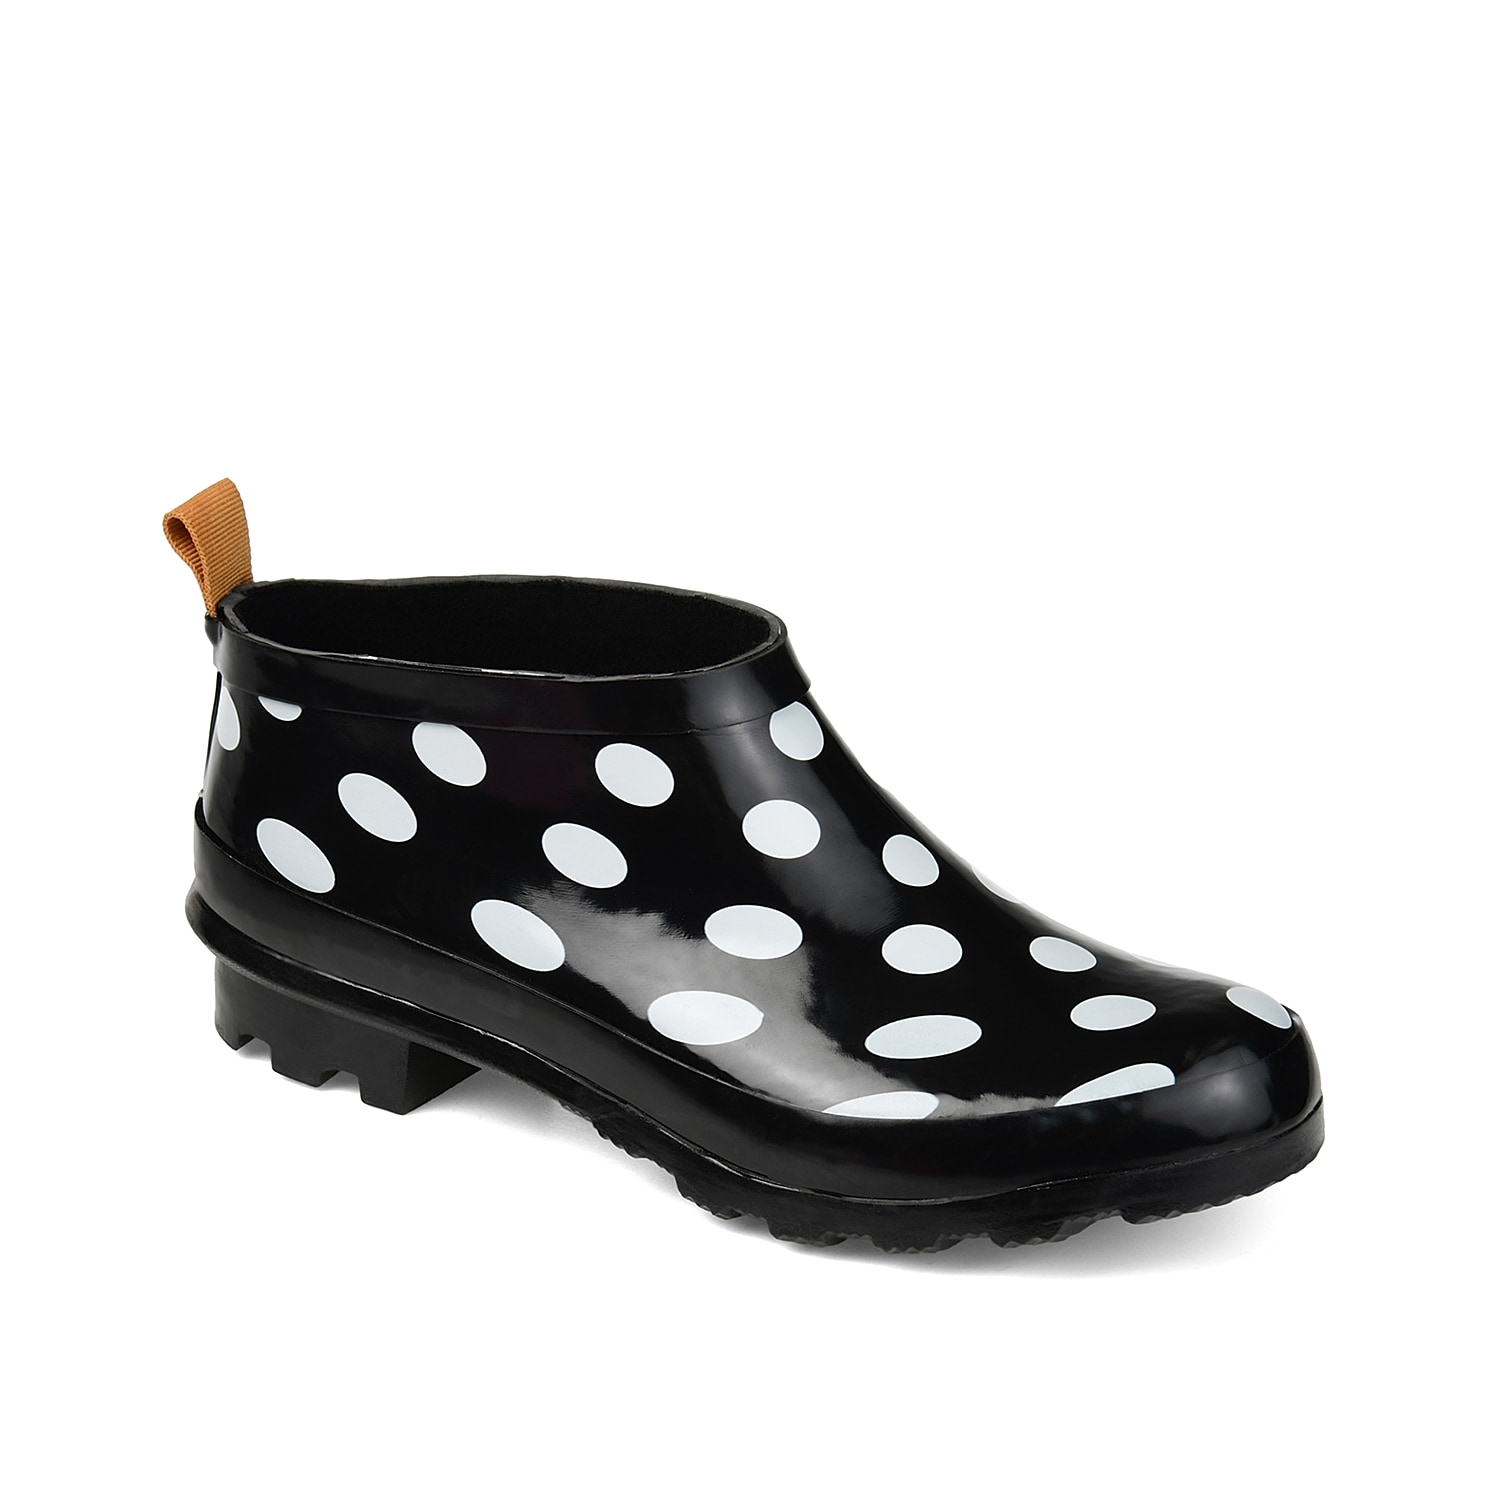 Brighten up gloomy days with the Rainer rain boot from Journee Collection. This waterproof ankle bootie features an eye-catching print and low-profile for your new favorite pair for wet days!Click here for Boot Measuring Guide.